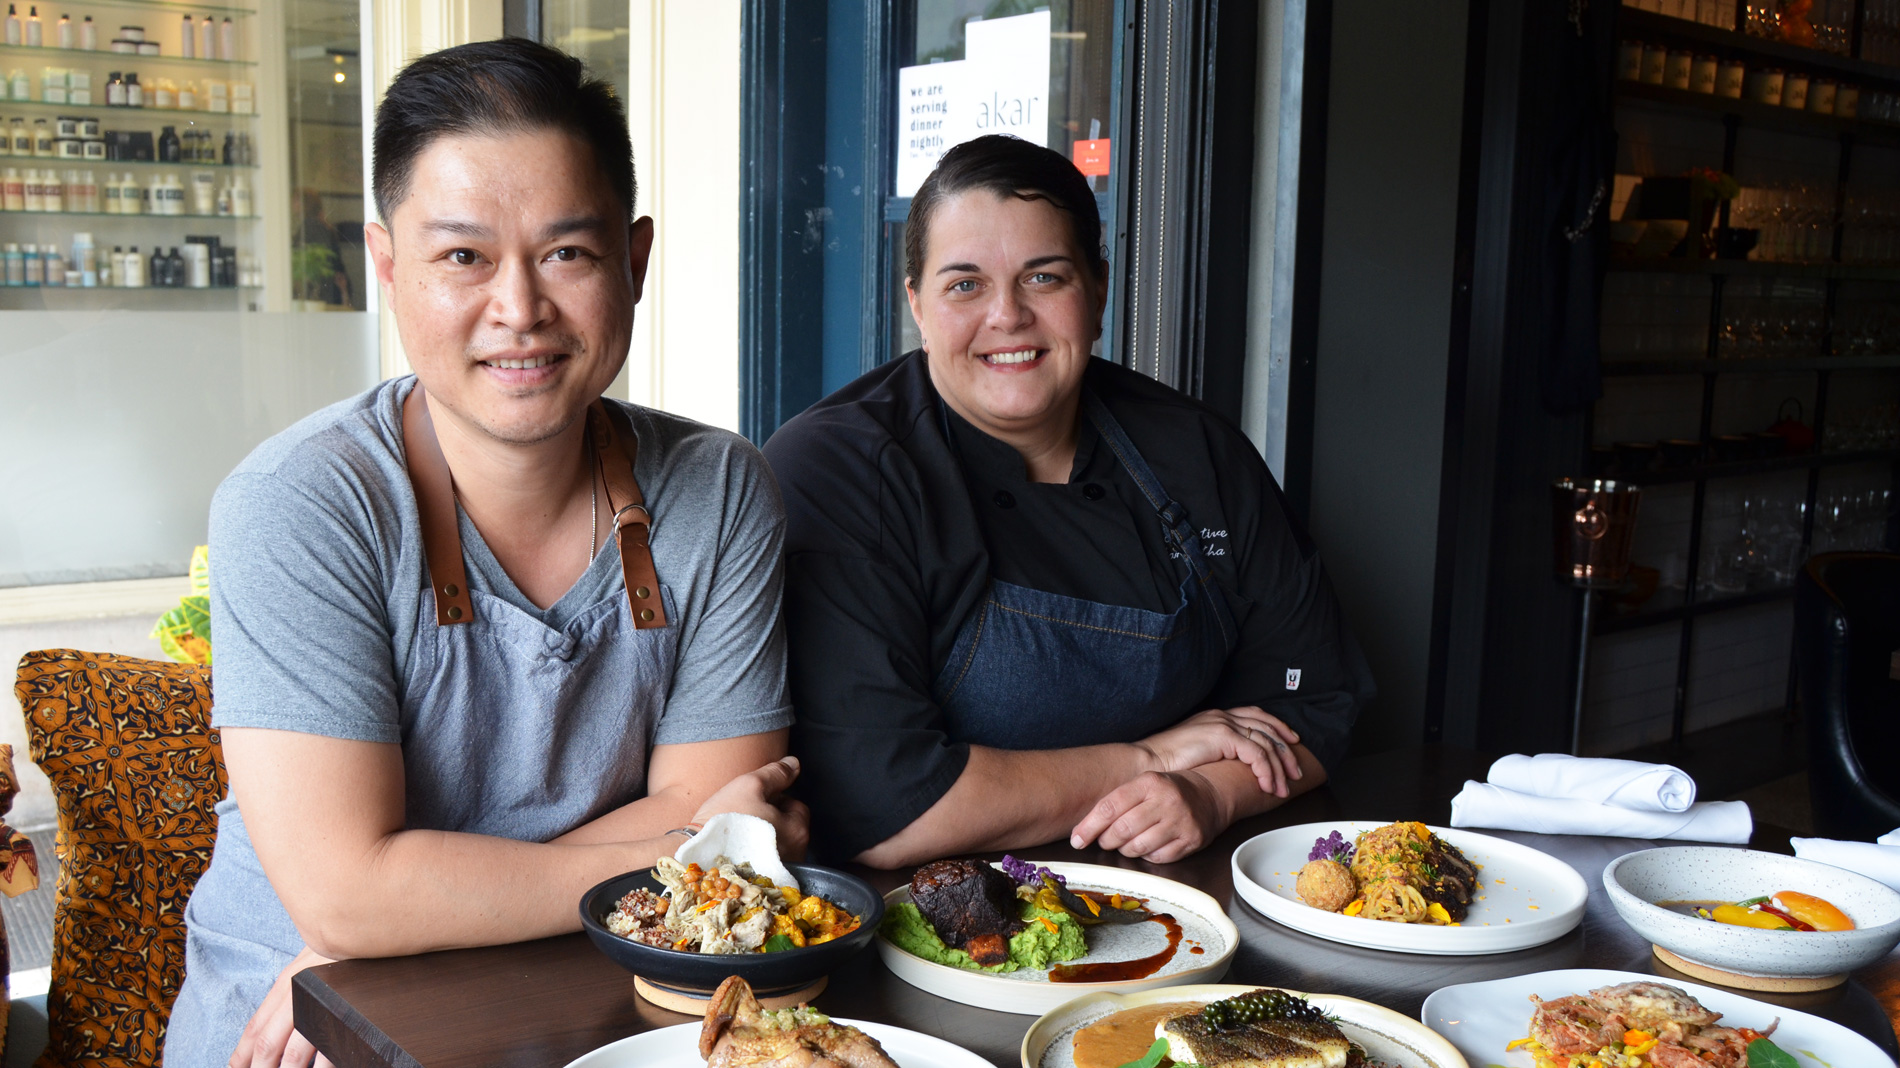 executive chef-owner Bernie Lee and teammate Samantha Pretto